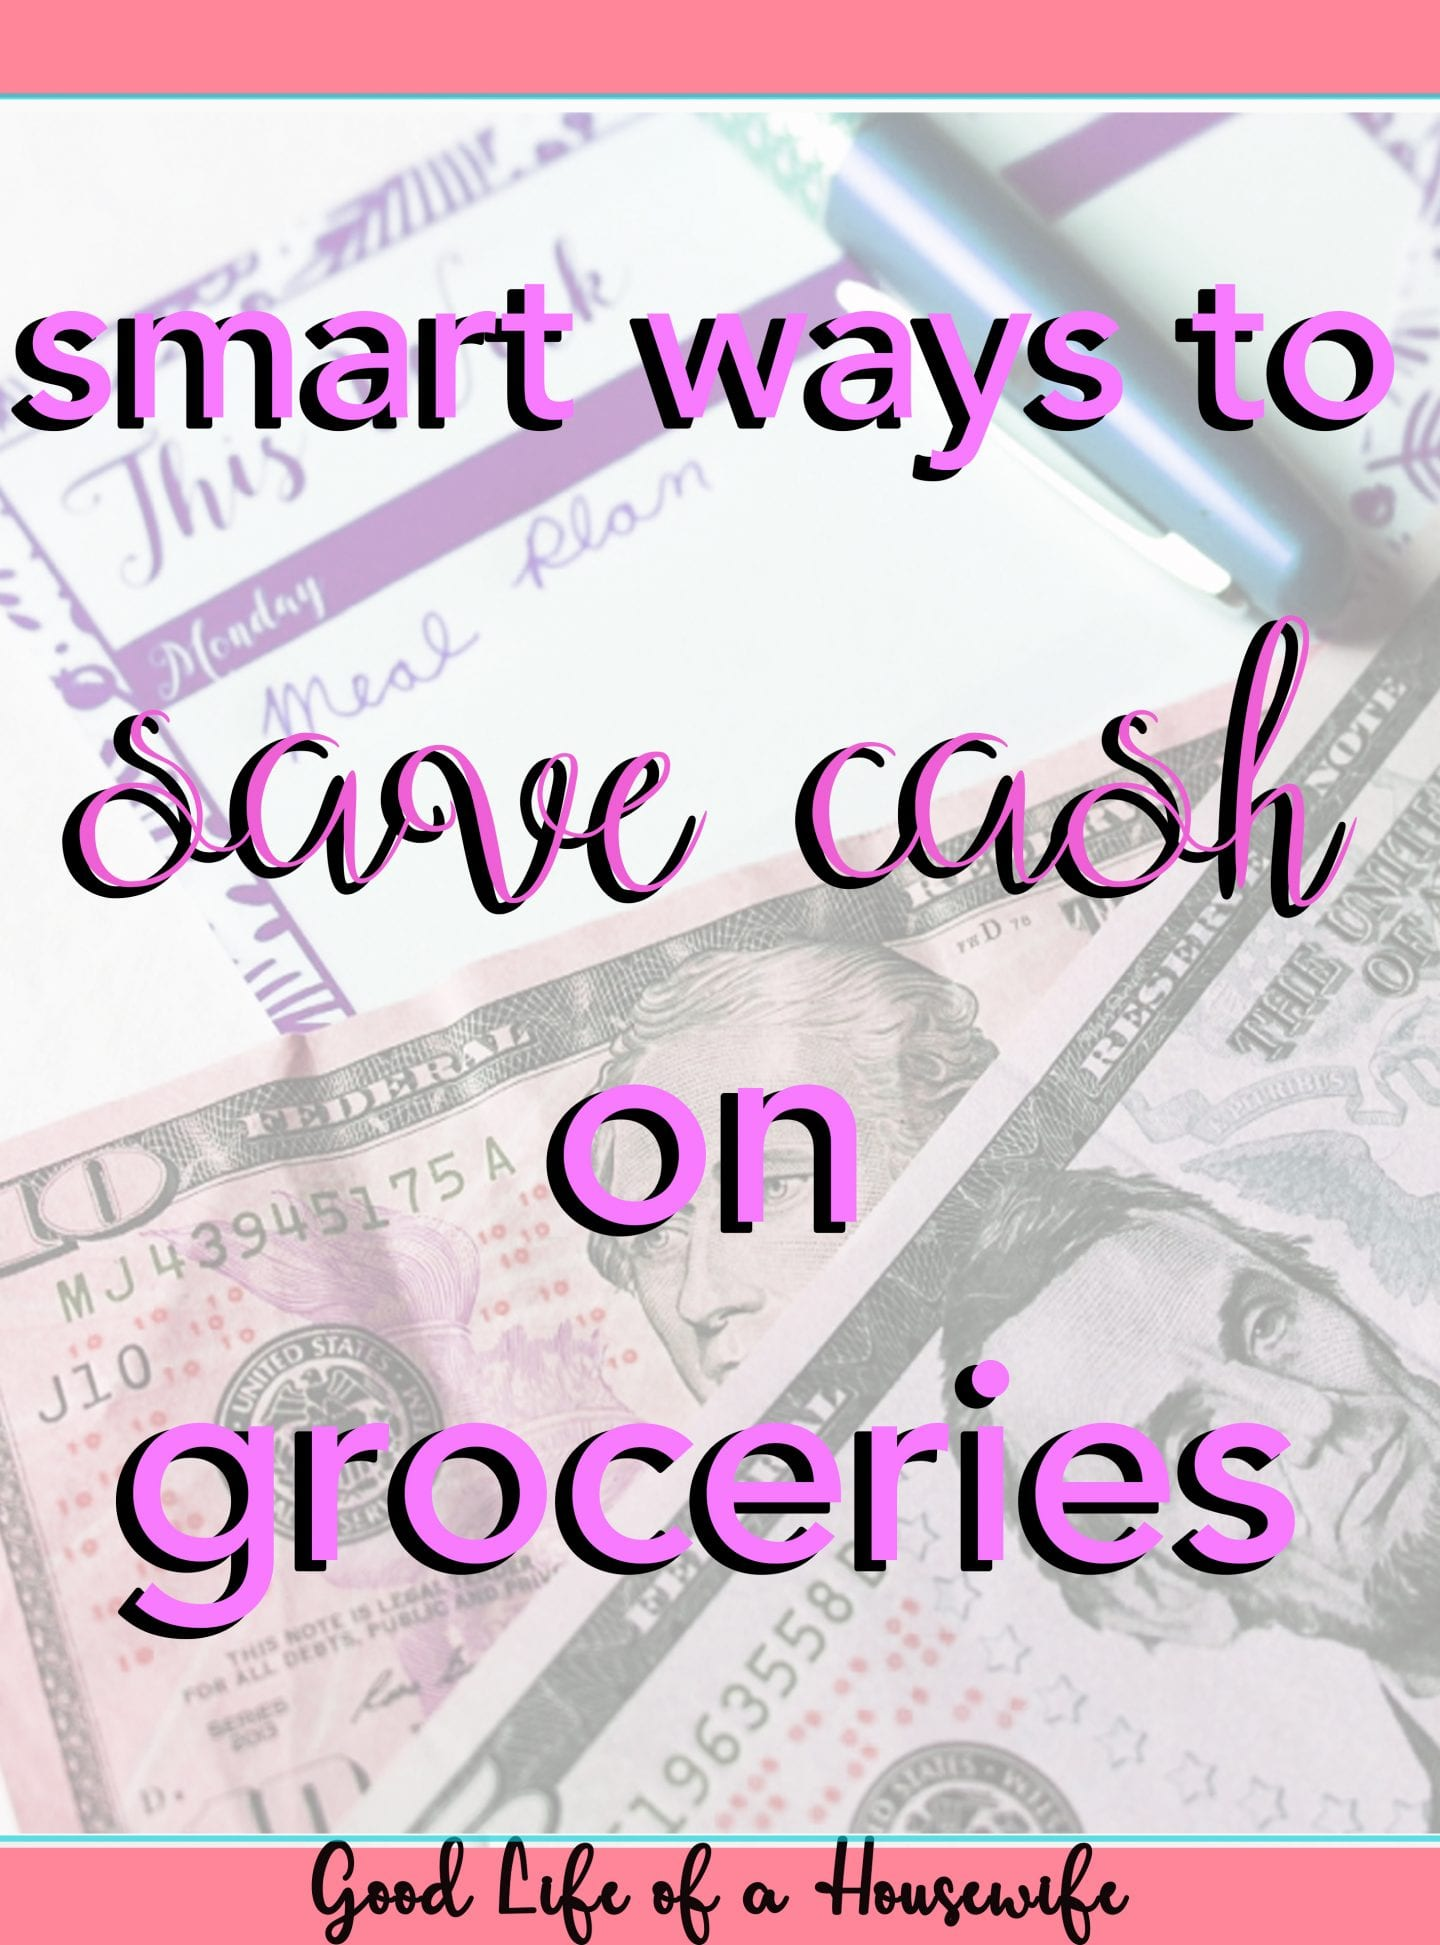 New Year, New Budget. 49 best practices to implement and save big cash. #budget #personalfinance #finance #householdfinance #budgeting #howtobudget #foodsavings #howtosavemoney #goodlifeofahousewife